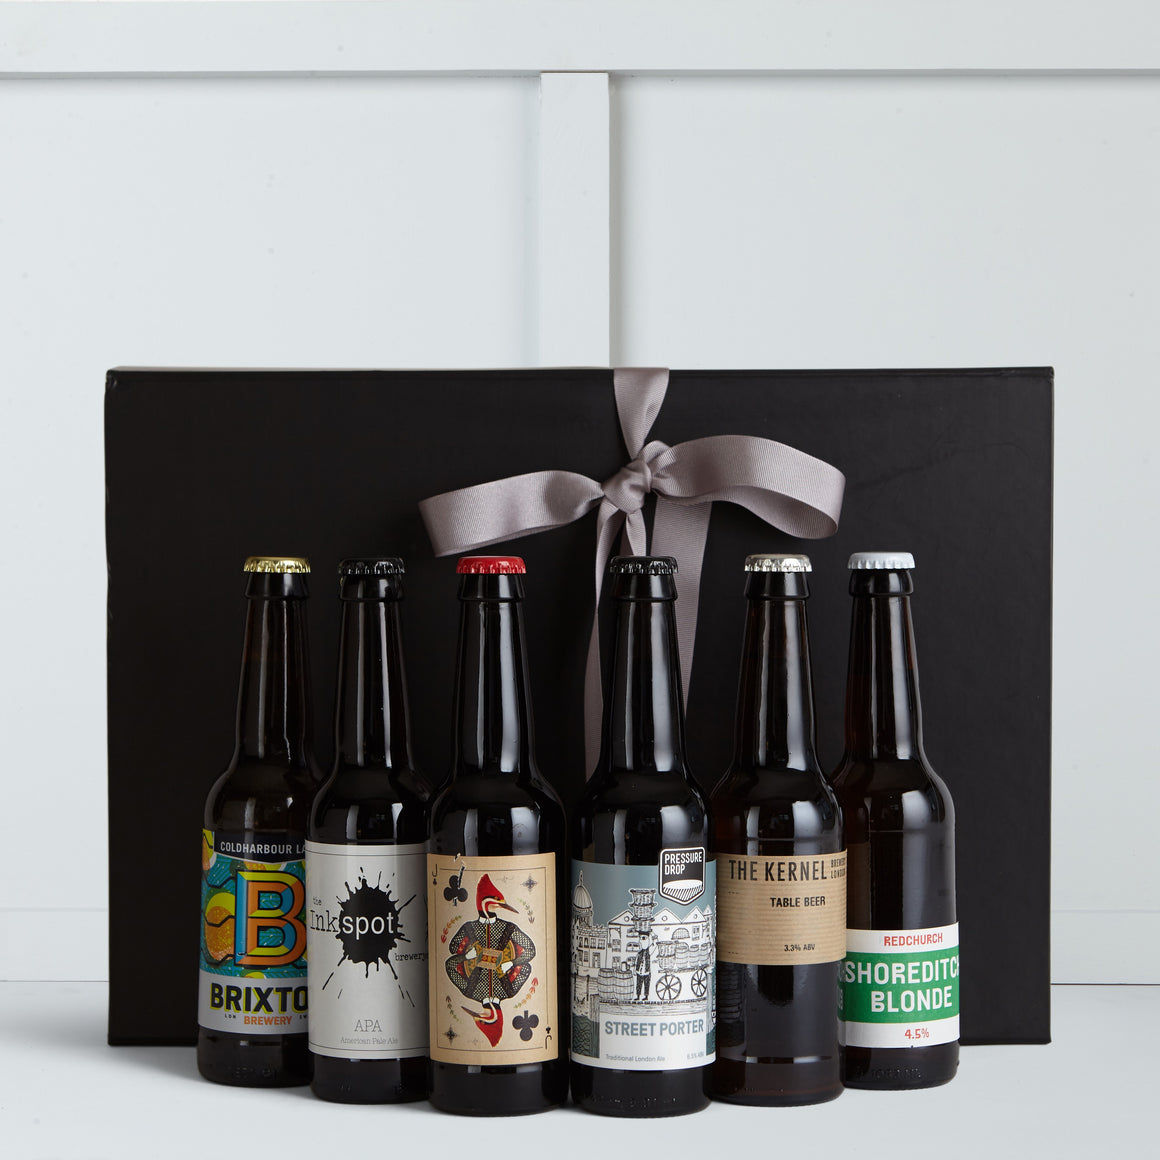 Six artisan beers from some of the best UK micro breweries